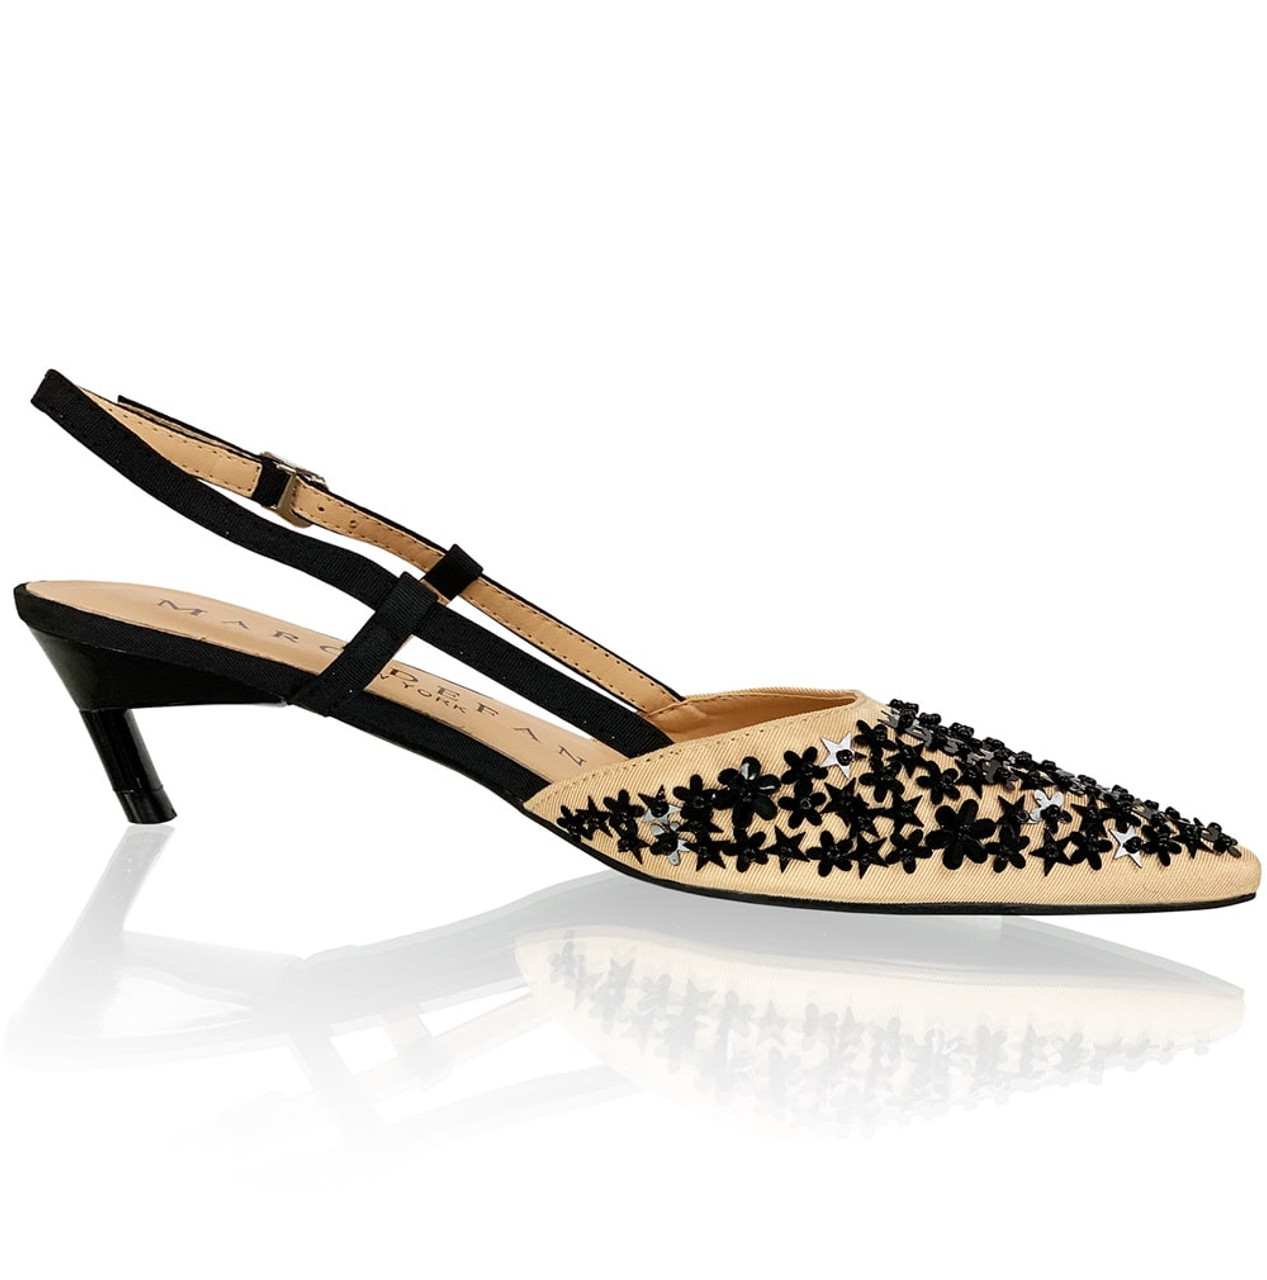 "2"" Strappy Pointed Toe Pumps with Star Sequins details"